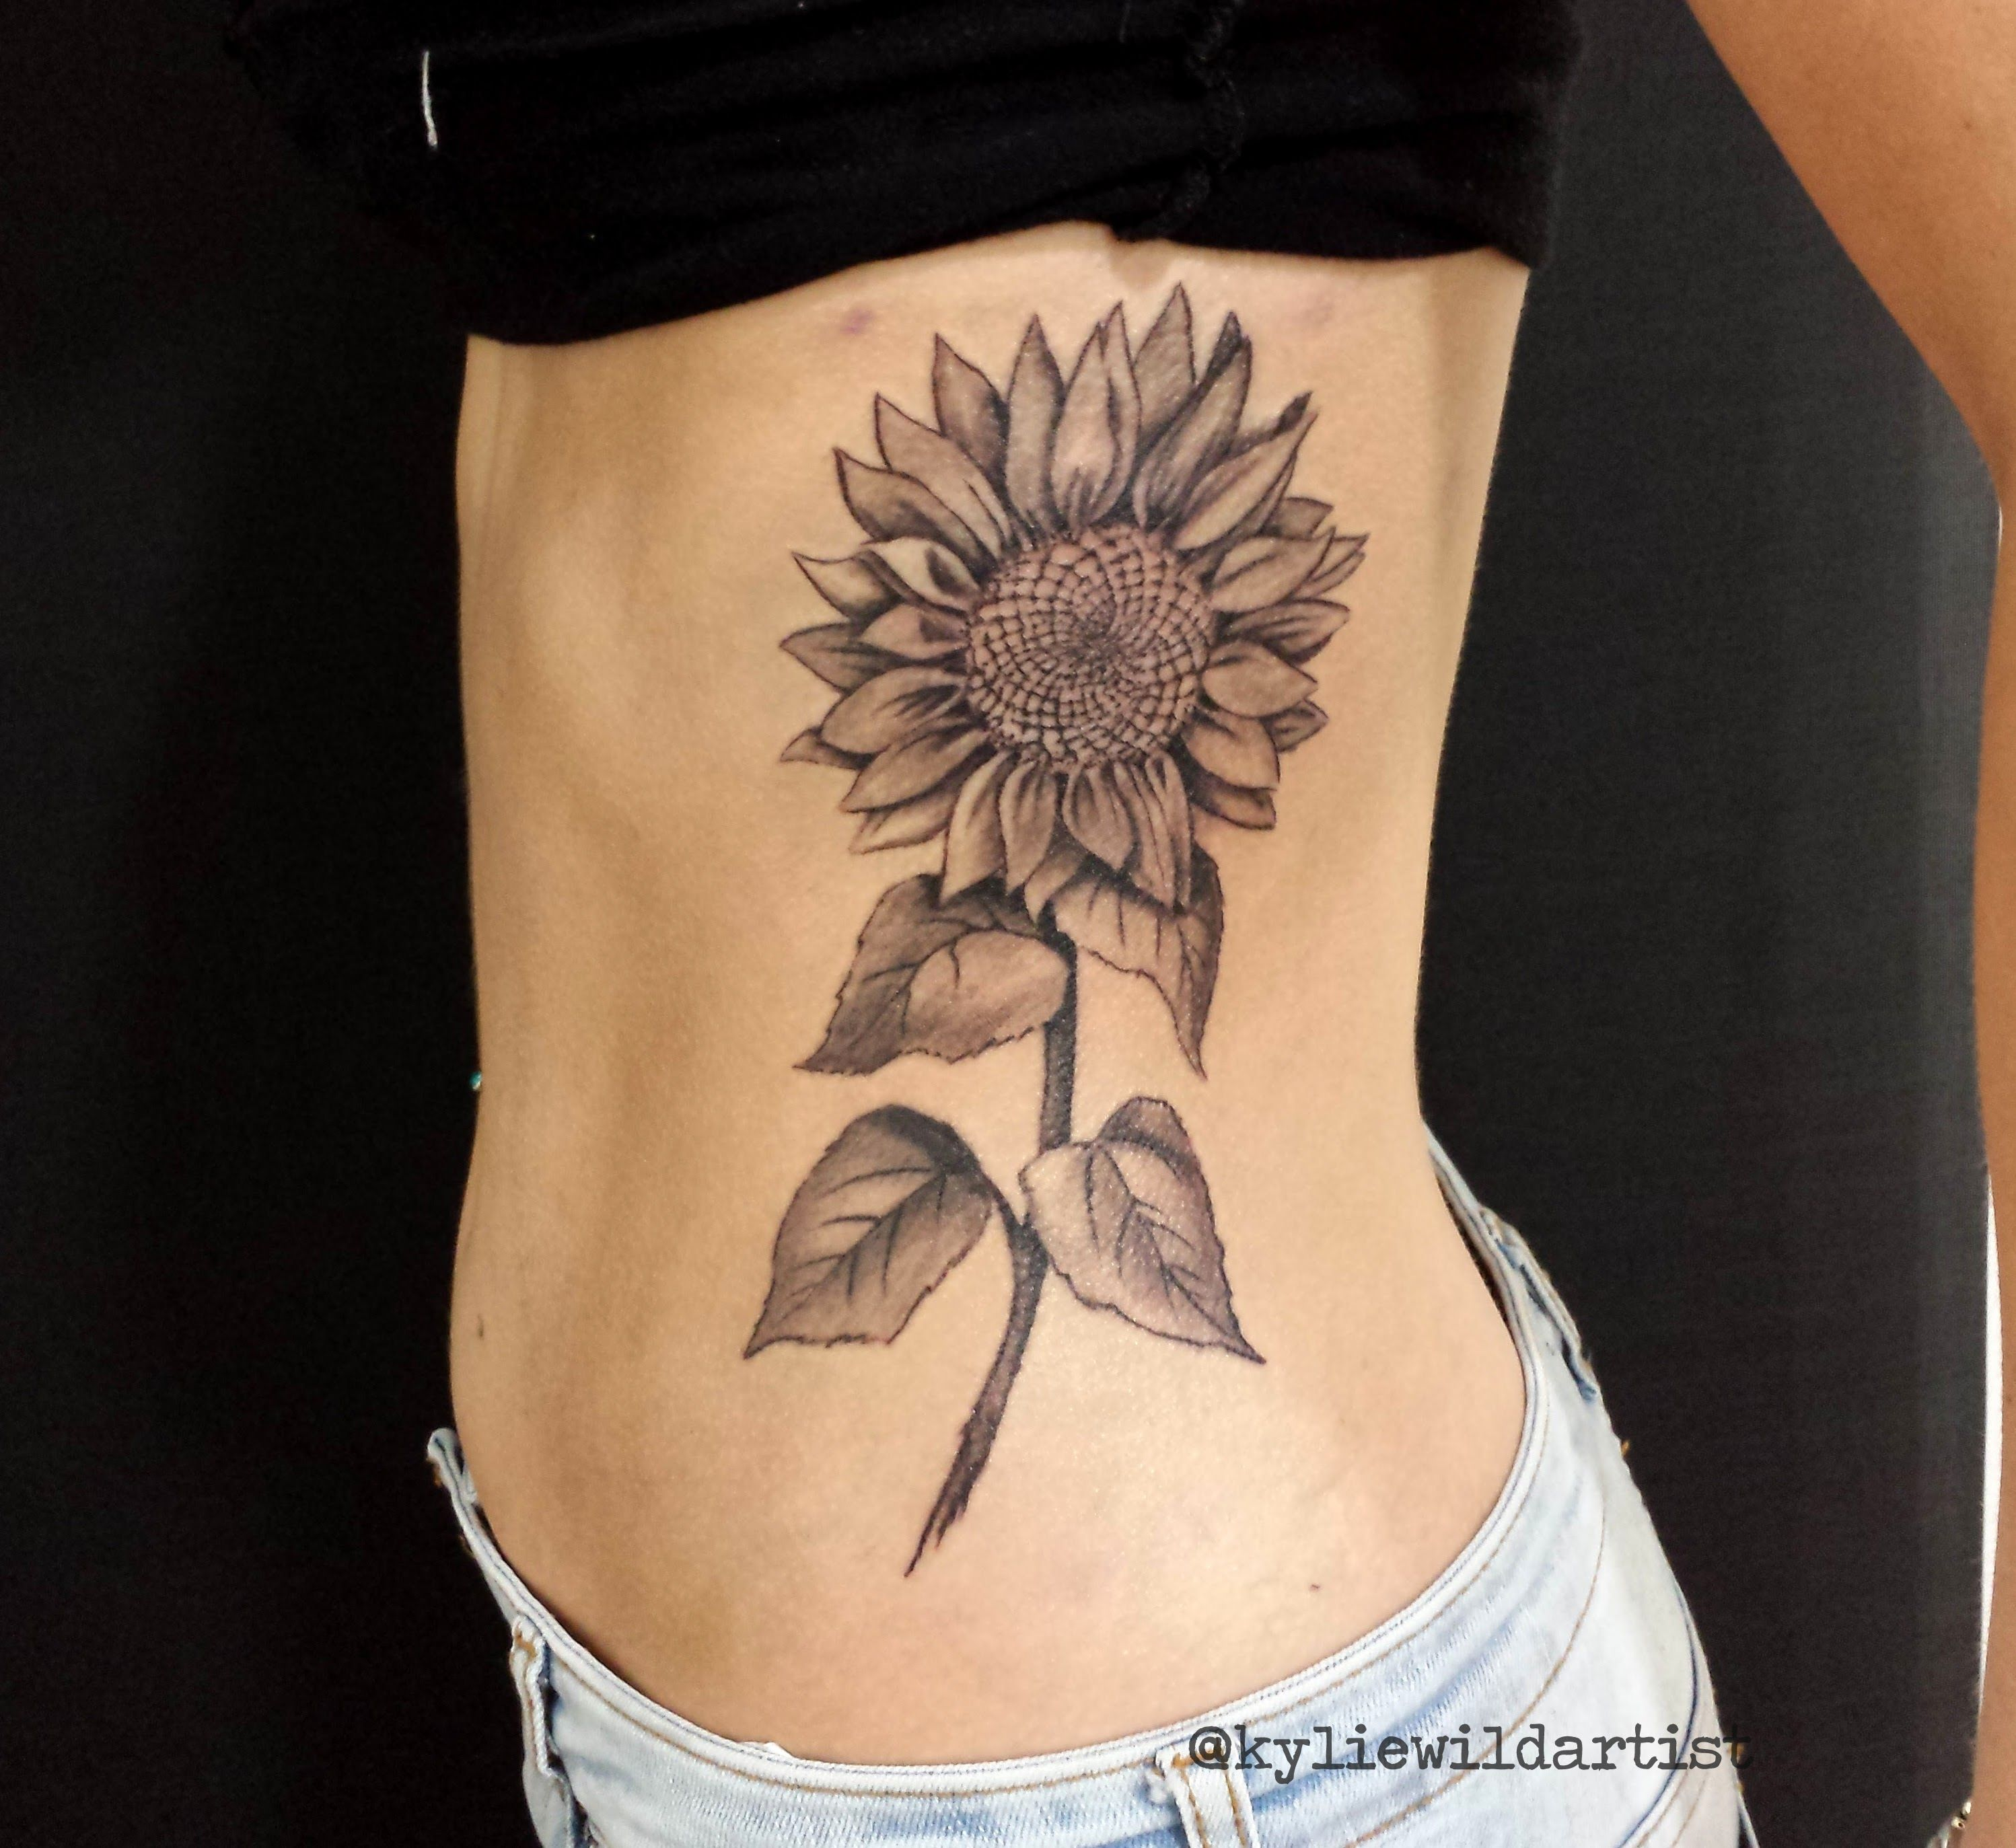 c91812f9d Black and Grey Sunflower on Ribs Tattoo by Kylie H Wild Artist ...